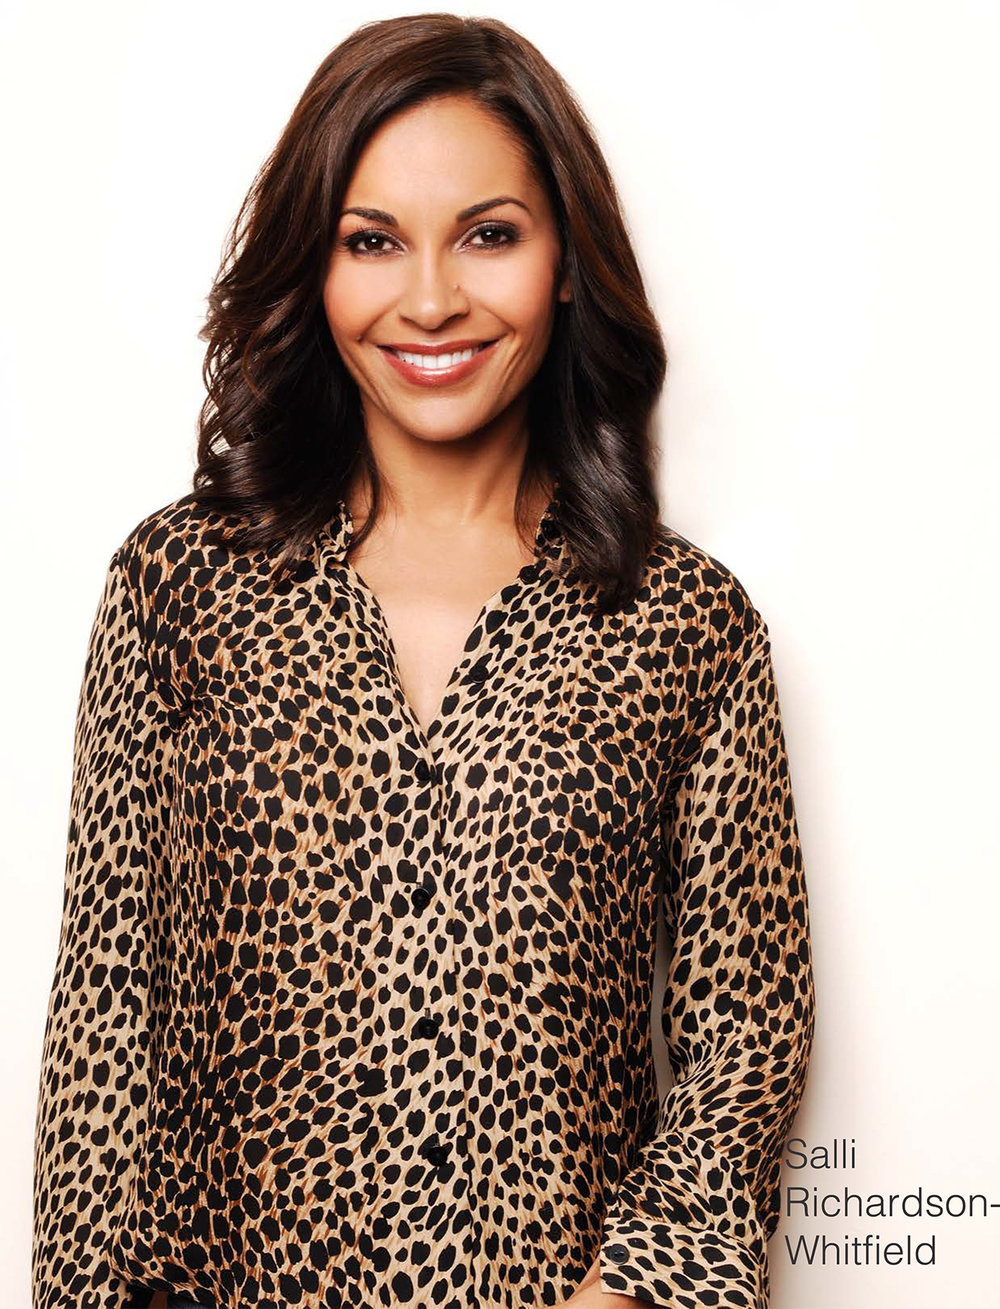 Salli Richardson-Whitfield.jpg